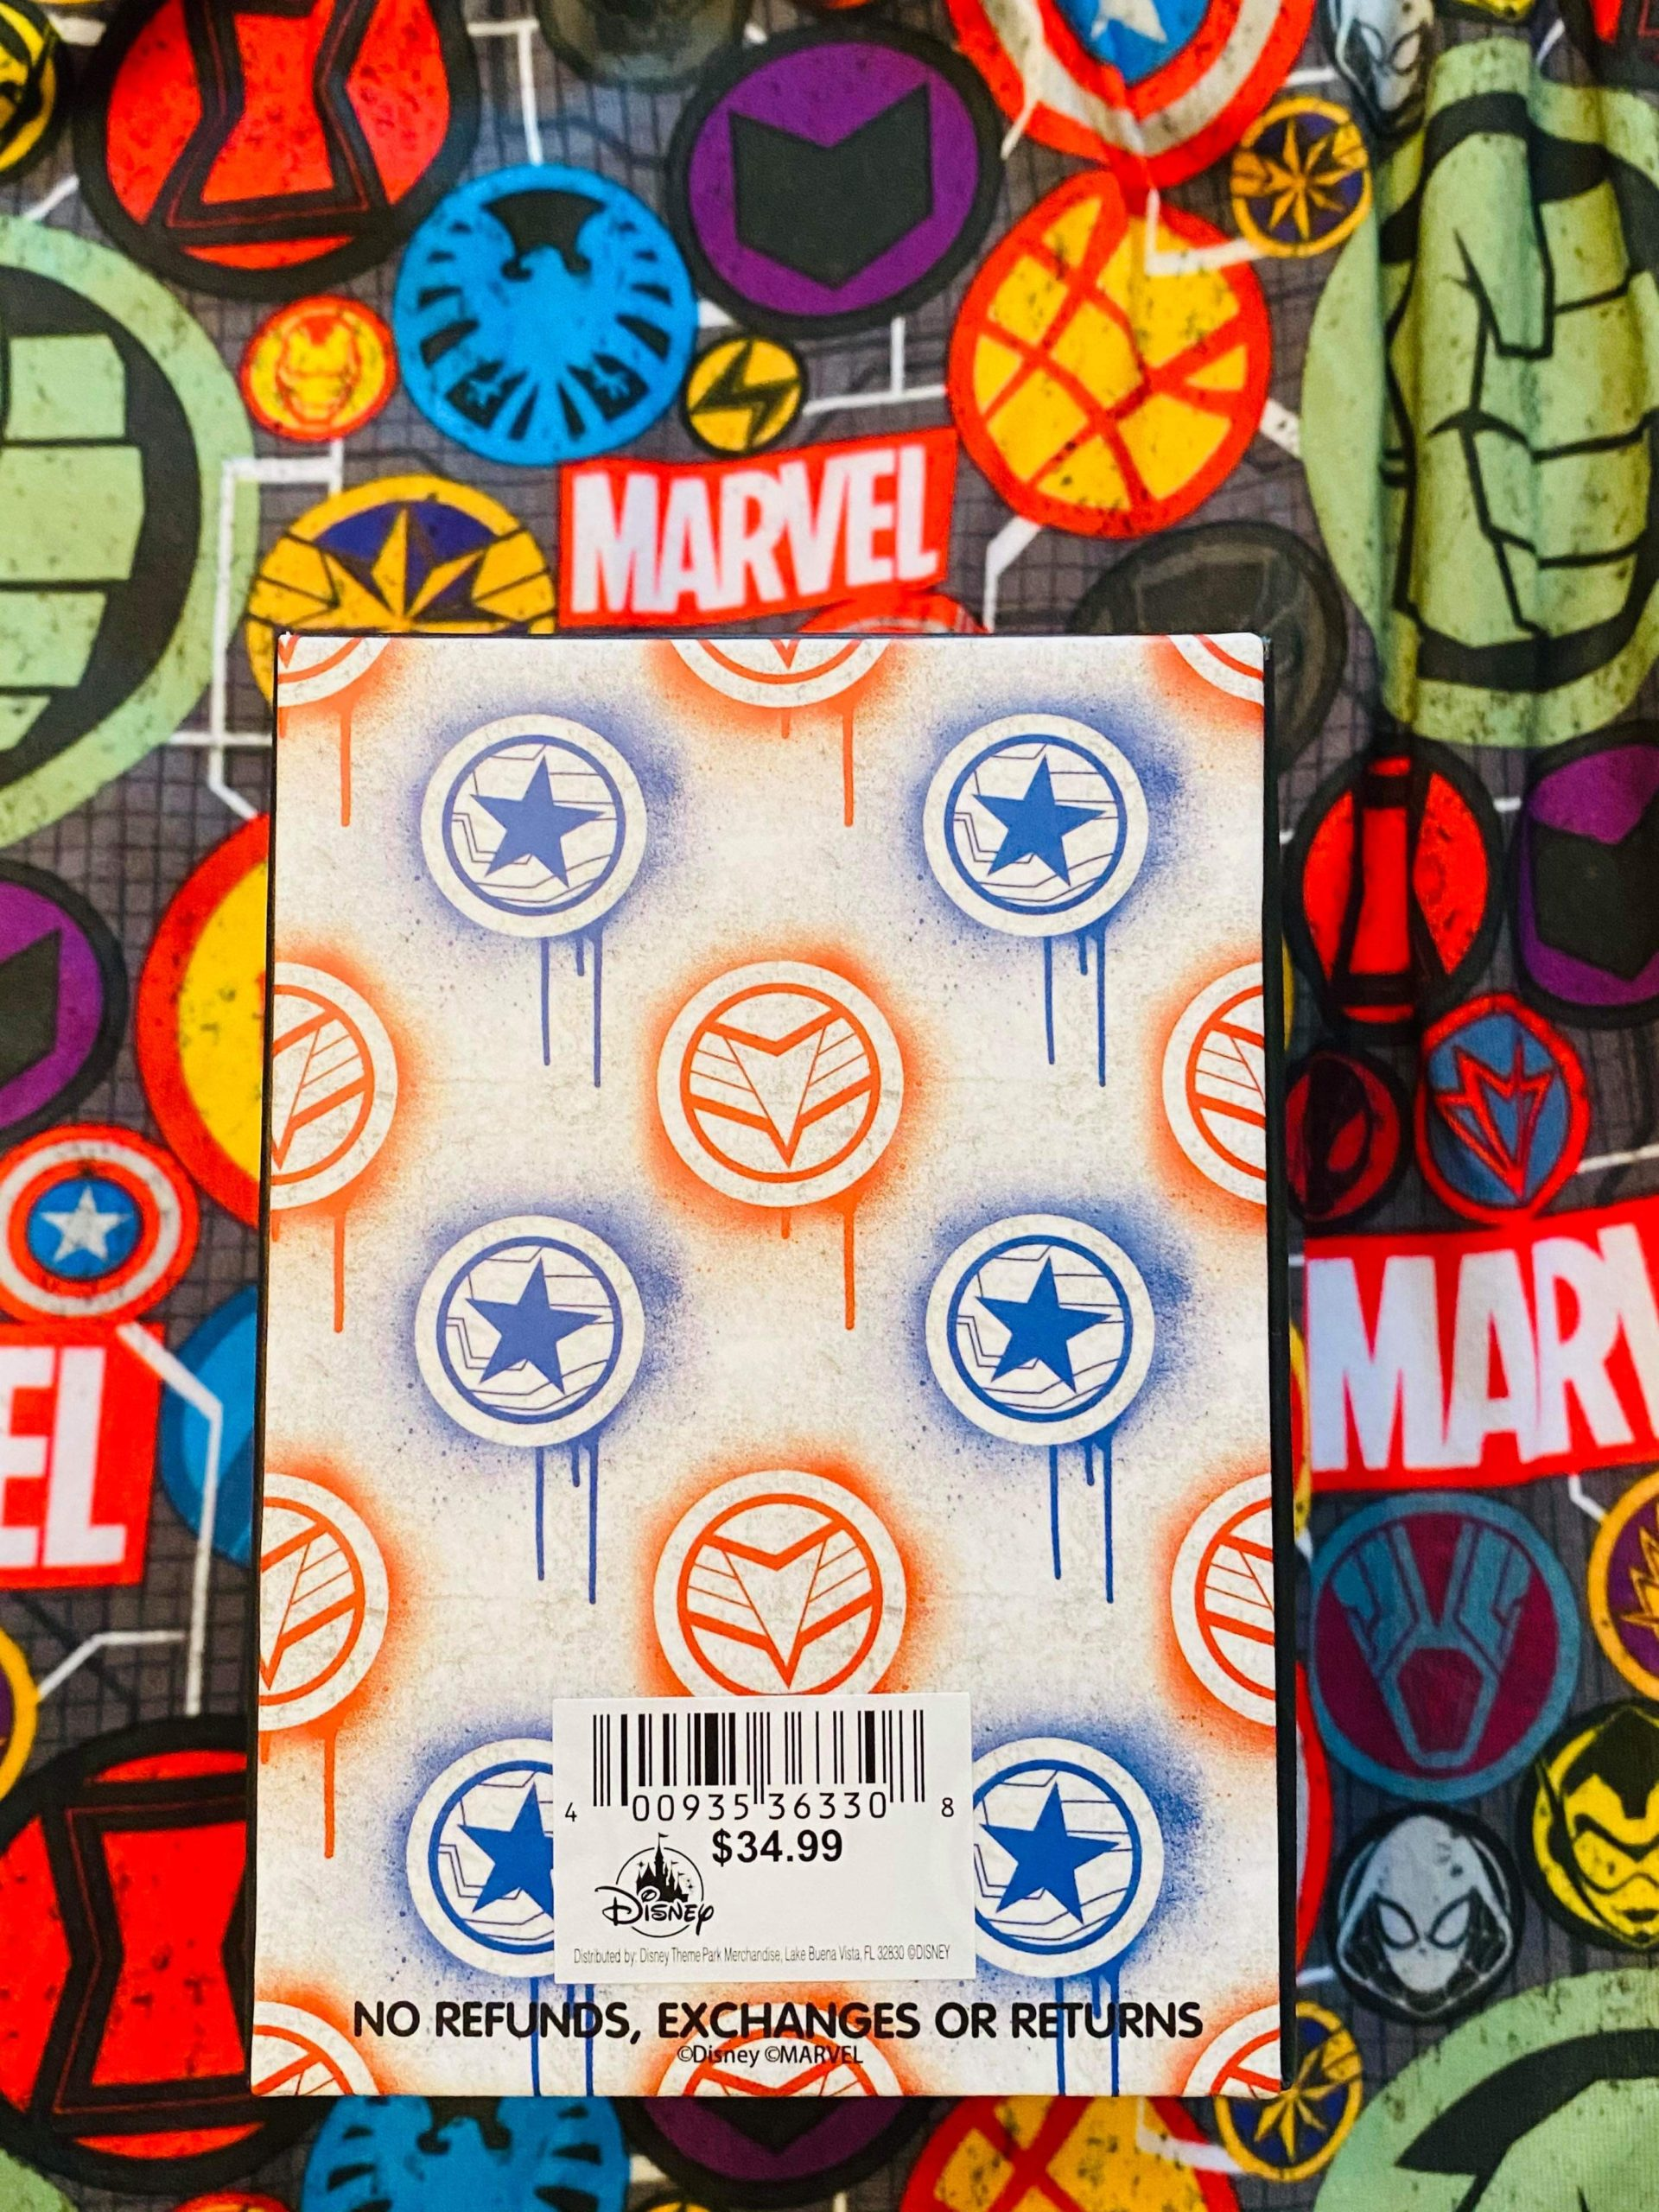 The Falcon and the Winter Soldier MagicBand Box